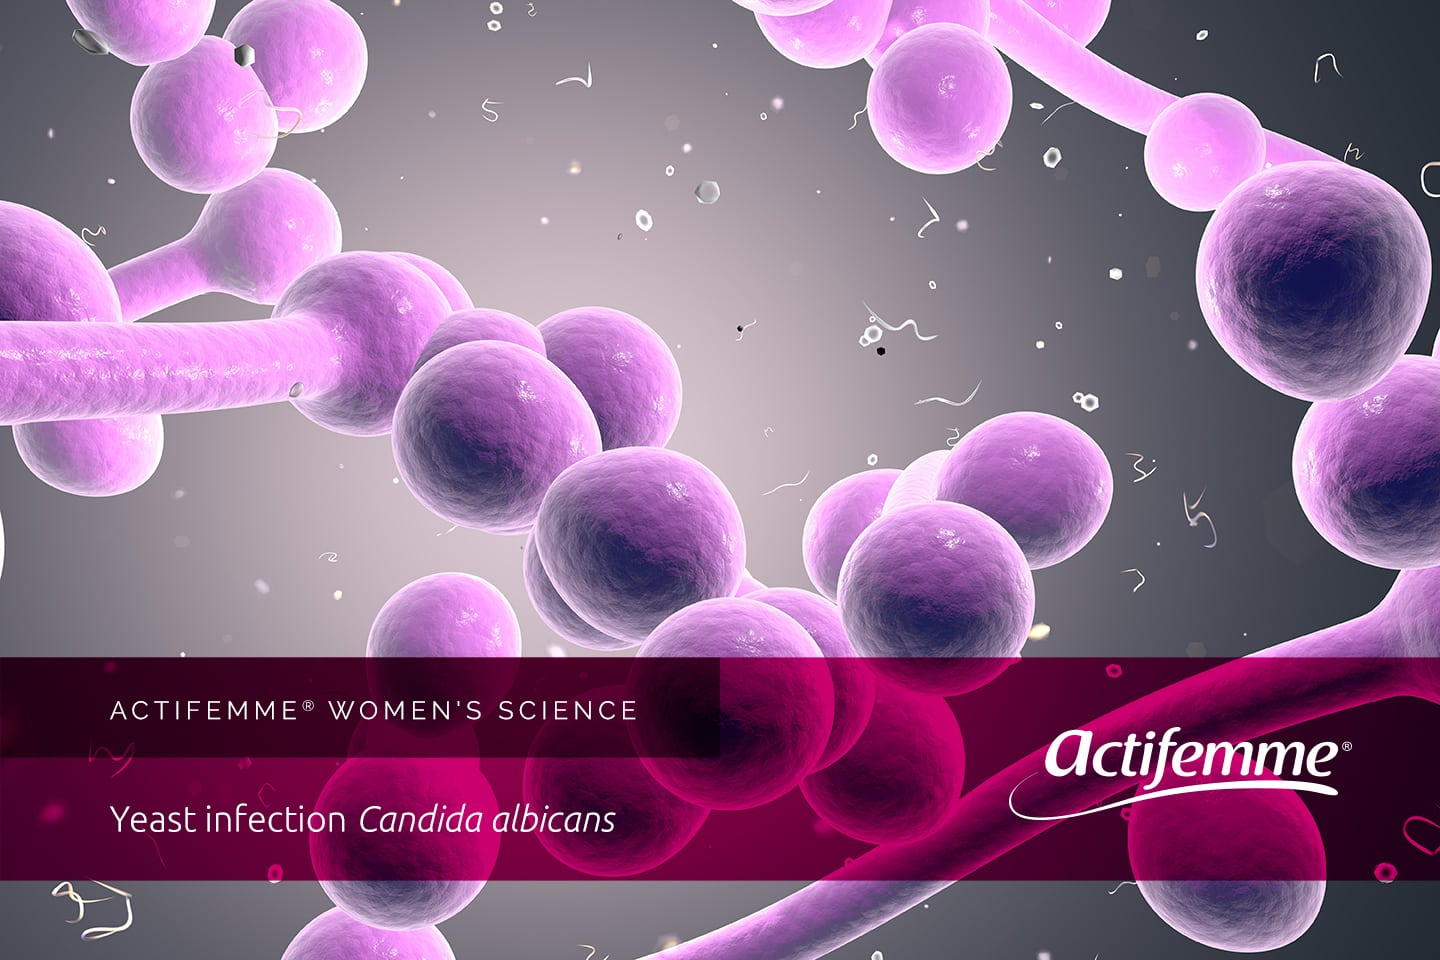 actifemme-women-science-candida-albicans-infeccion-tratamiento-picor-vulvovaginitis